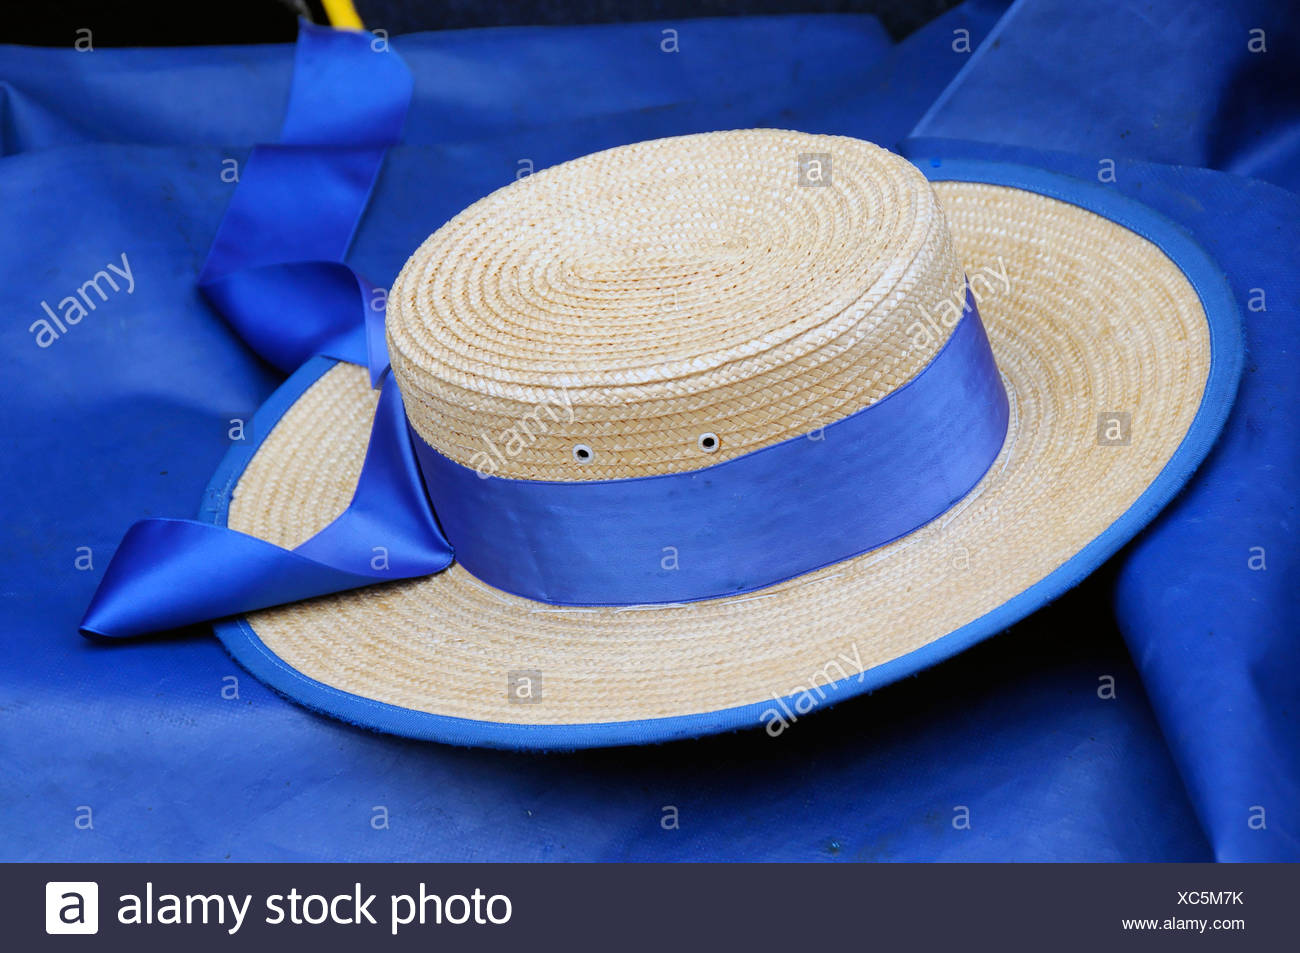 8a2b7d25dae Gondoliers Straw Hat Stock Photos   Gondoliers Straw Hat Stock ...